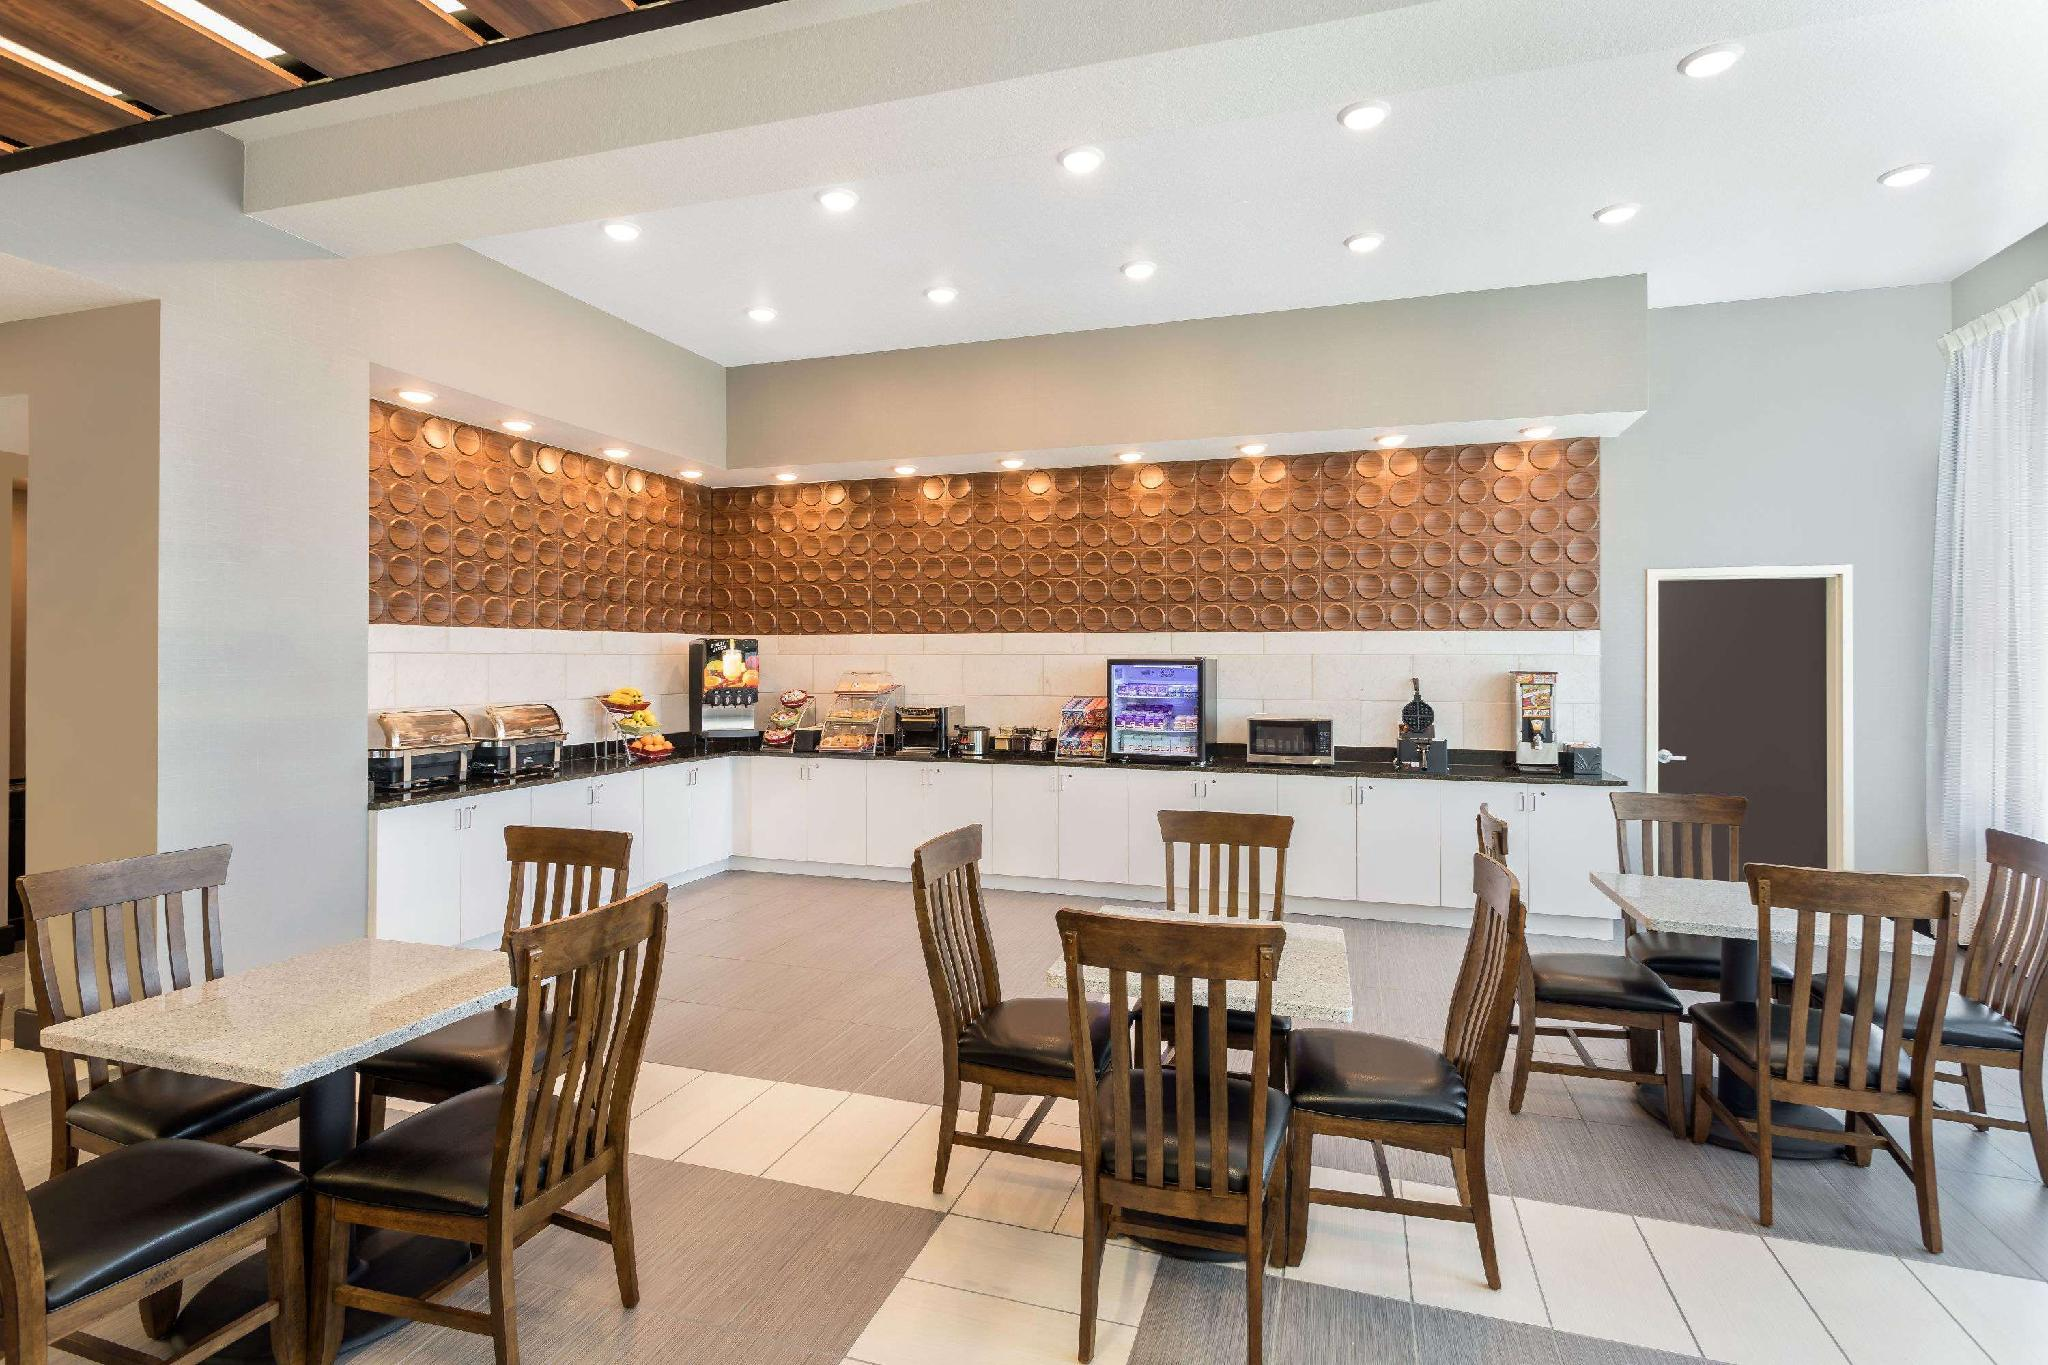 Fairfield Inn and Suites by Marriott Asheville Airport Fletcher, Buncombe